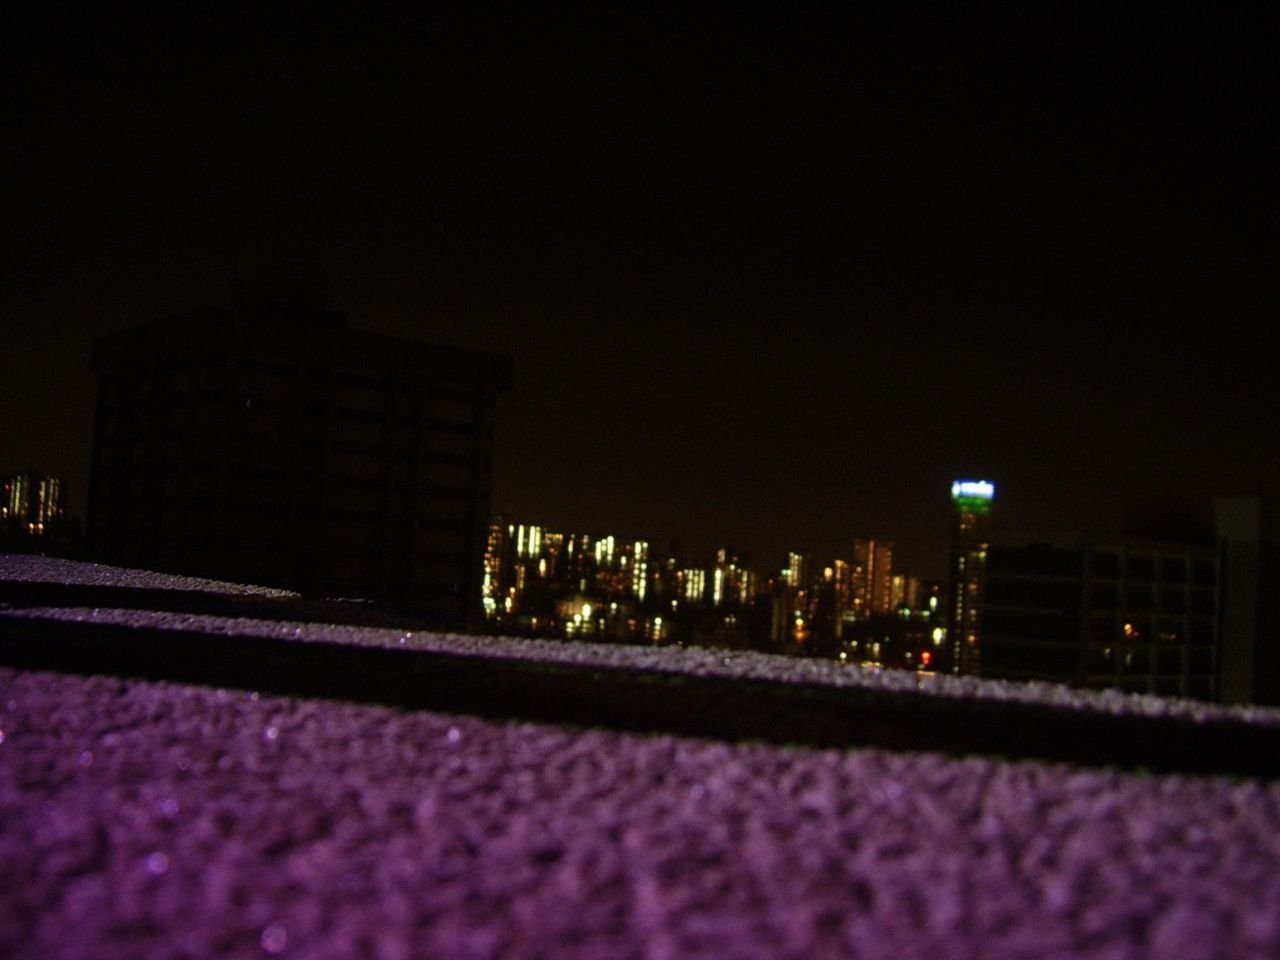 Jhb at night